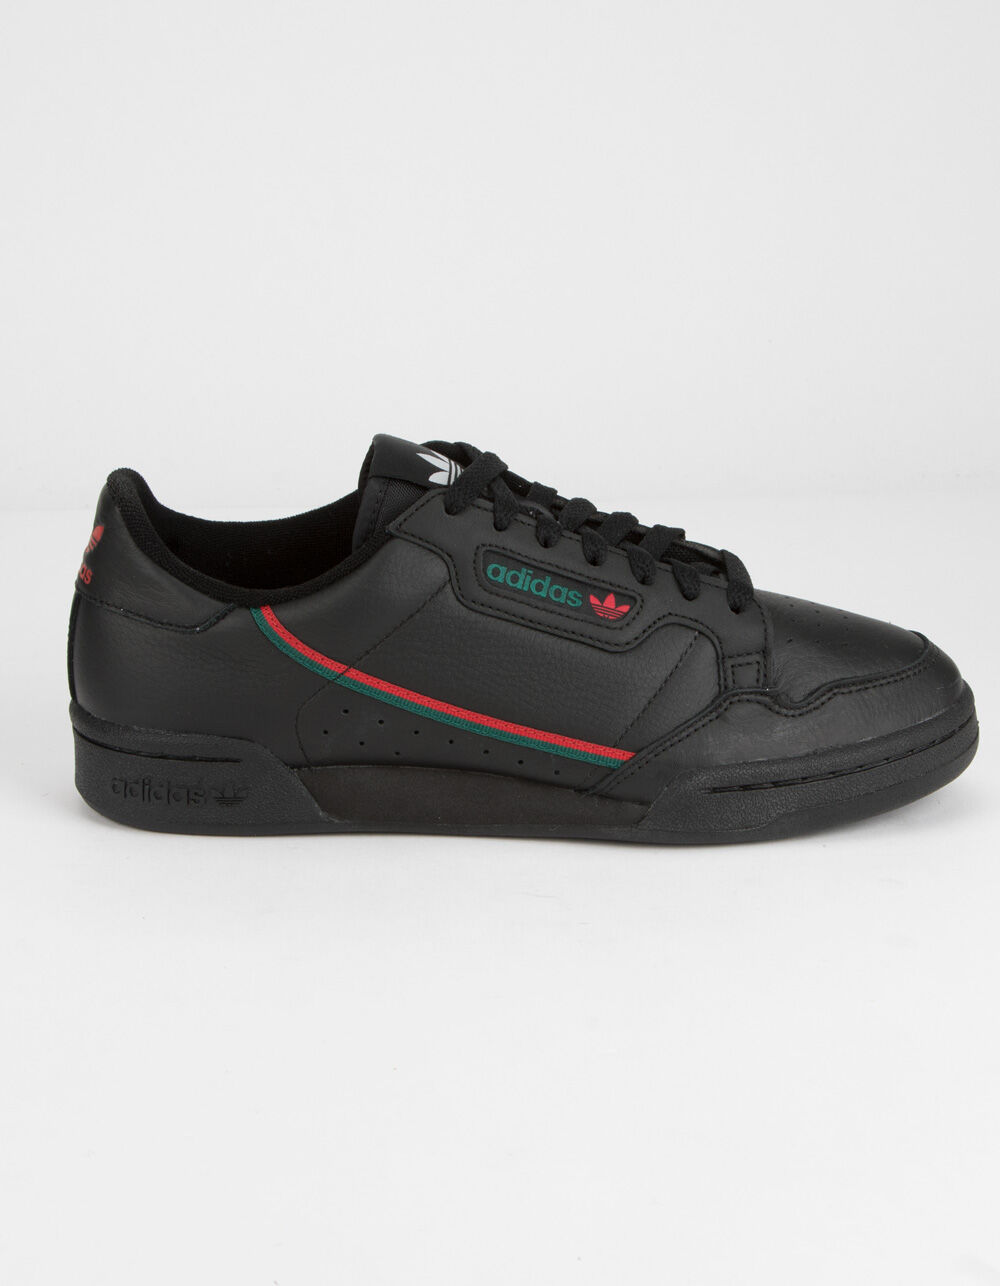 ADIDAS Continental 80 Core Black & Scarlet Shoes